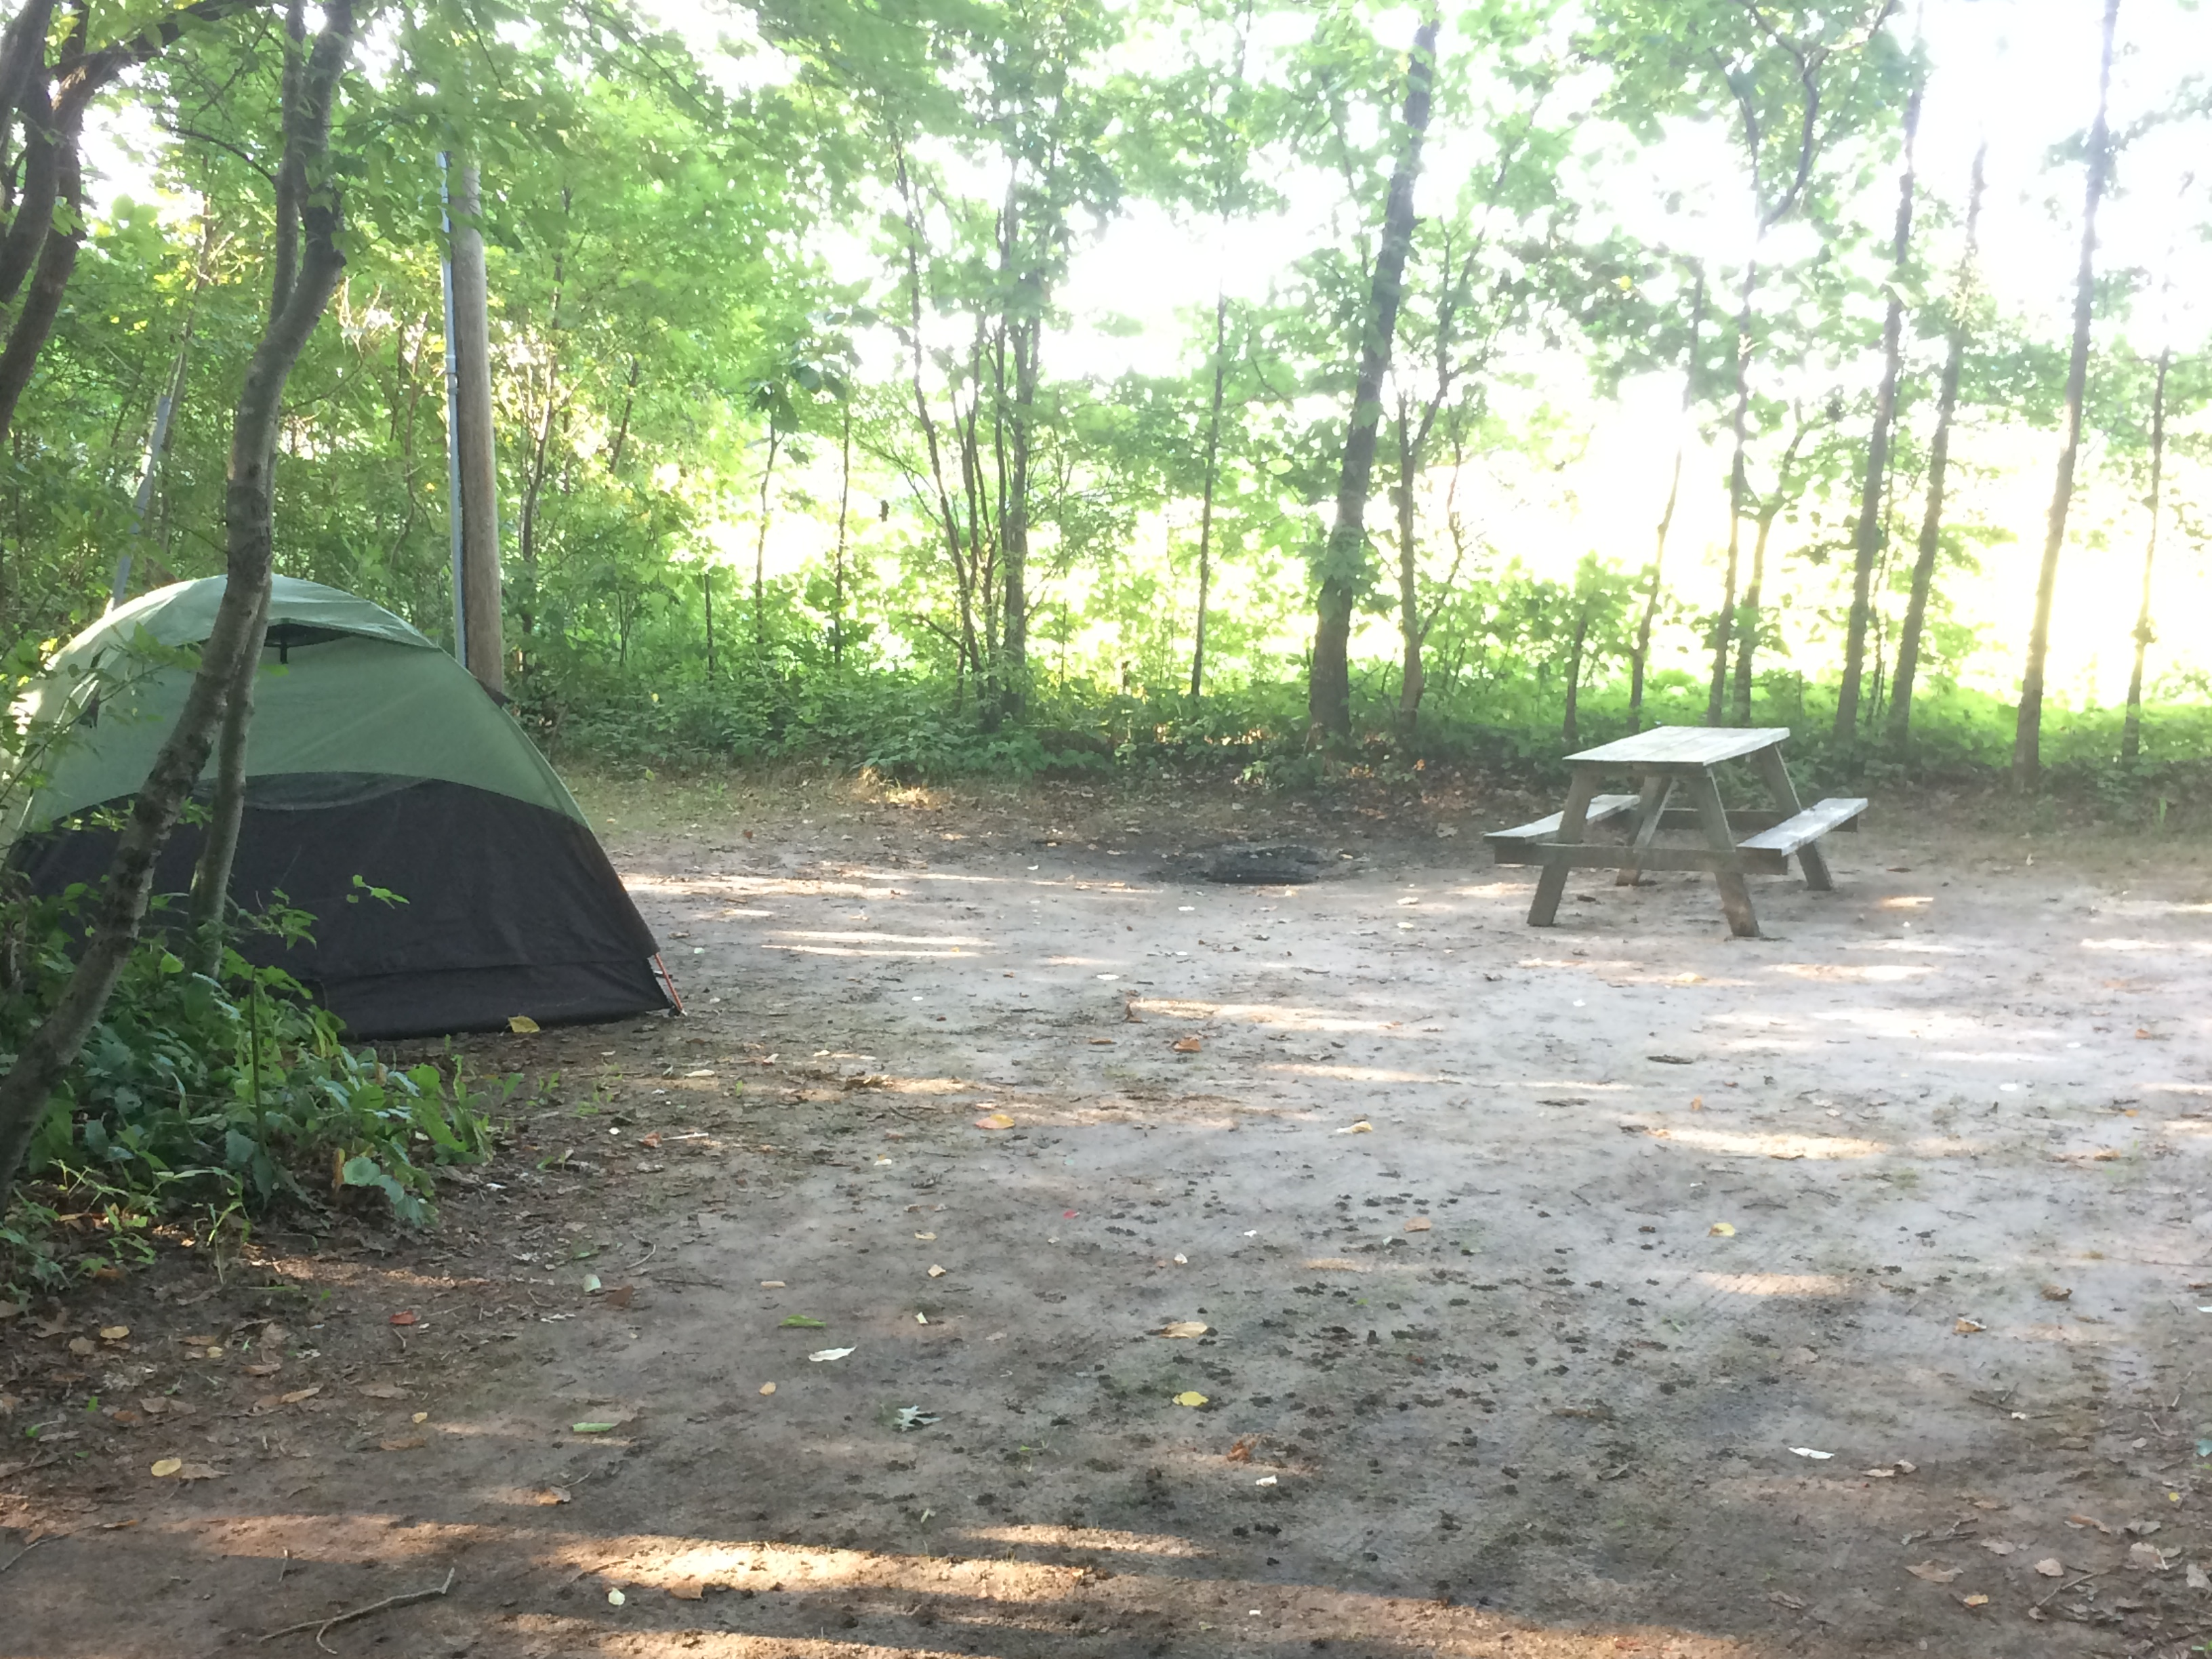 Campgrounds open in april in michigan